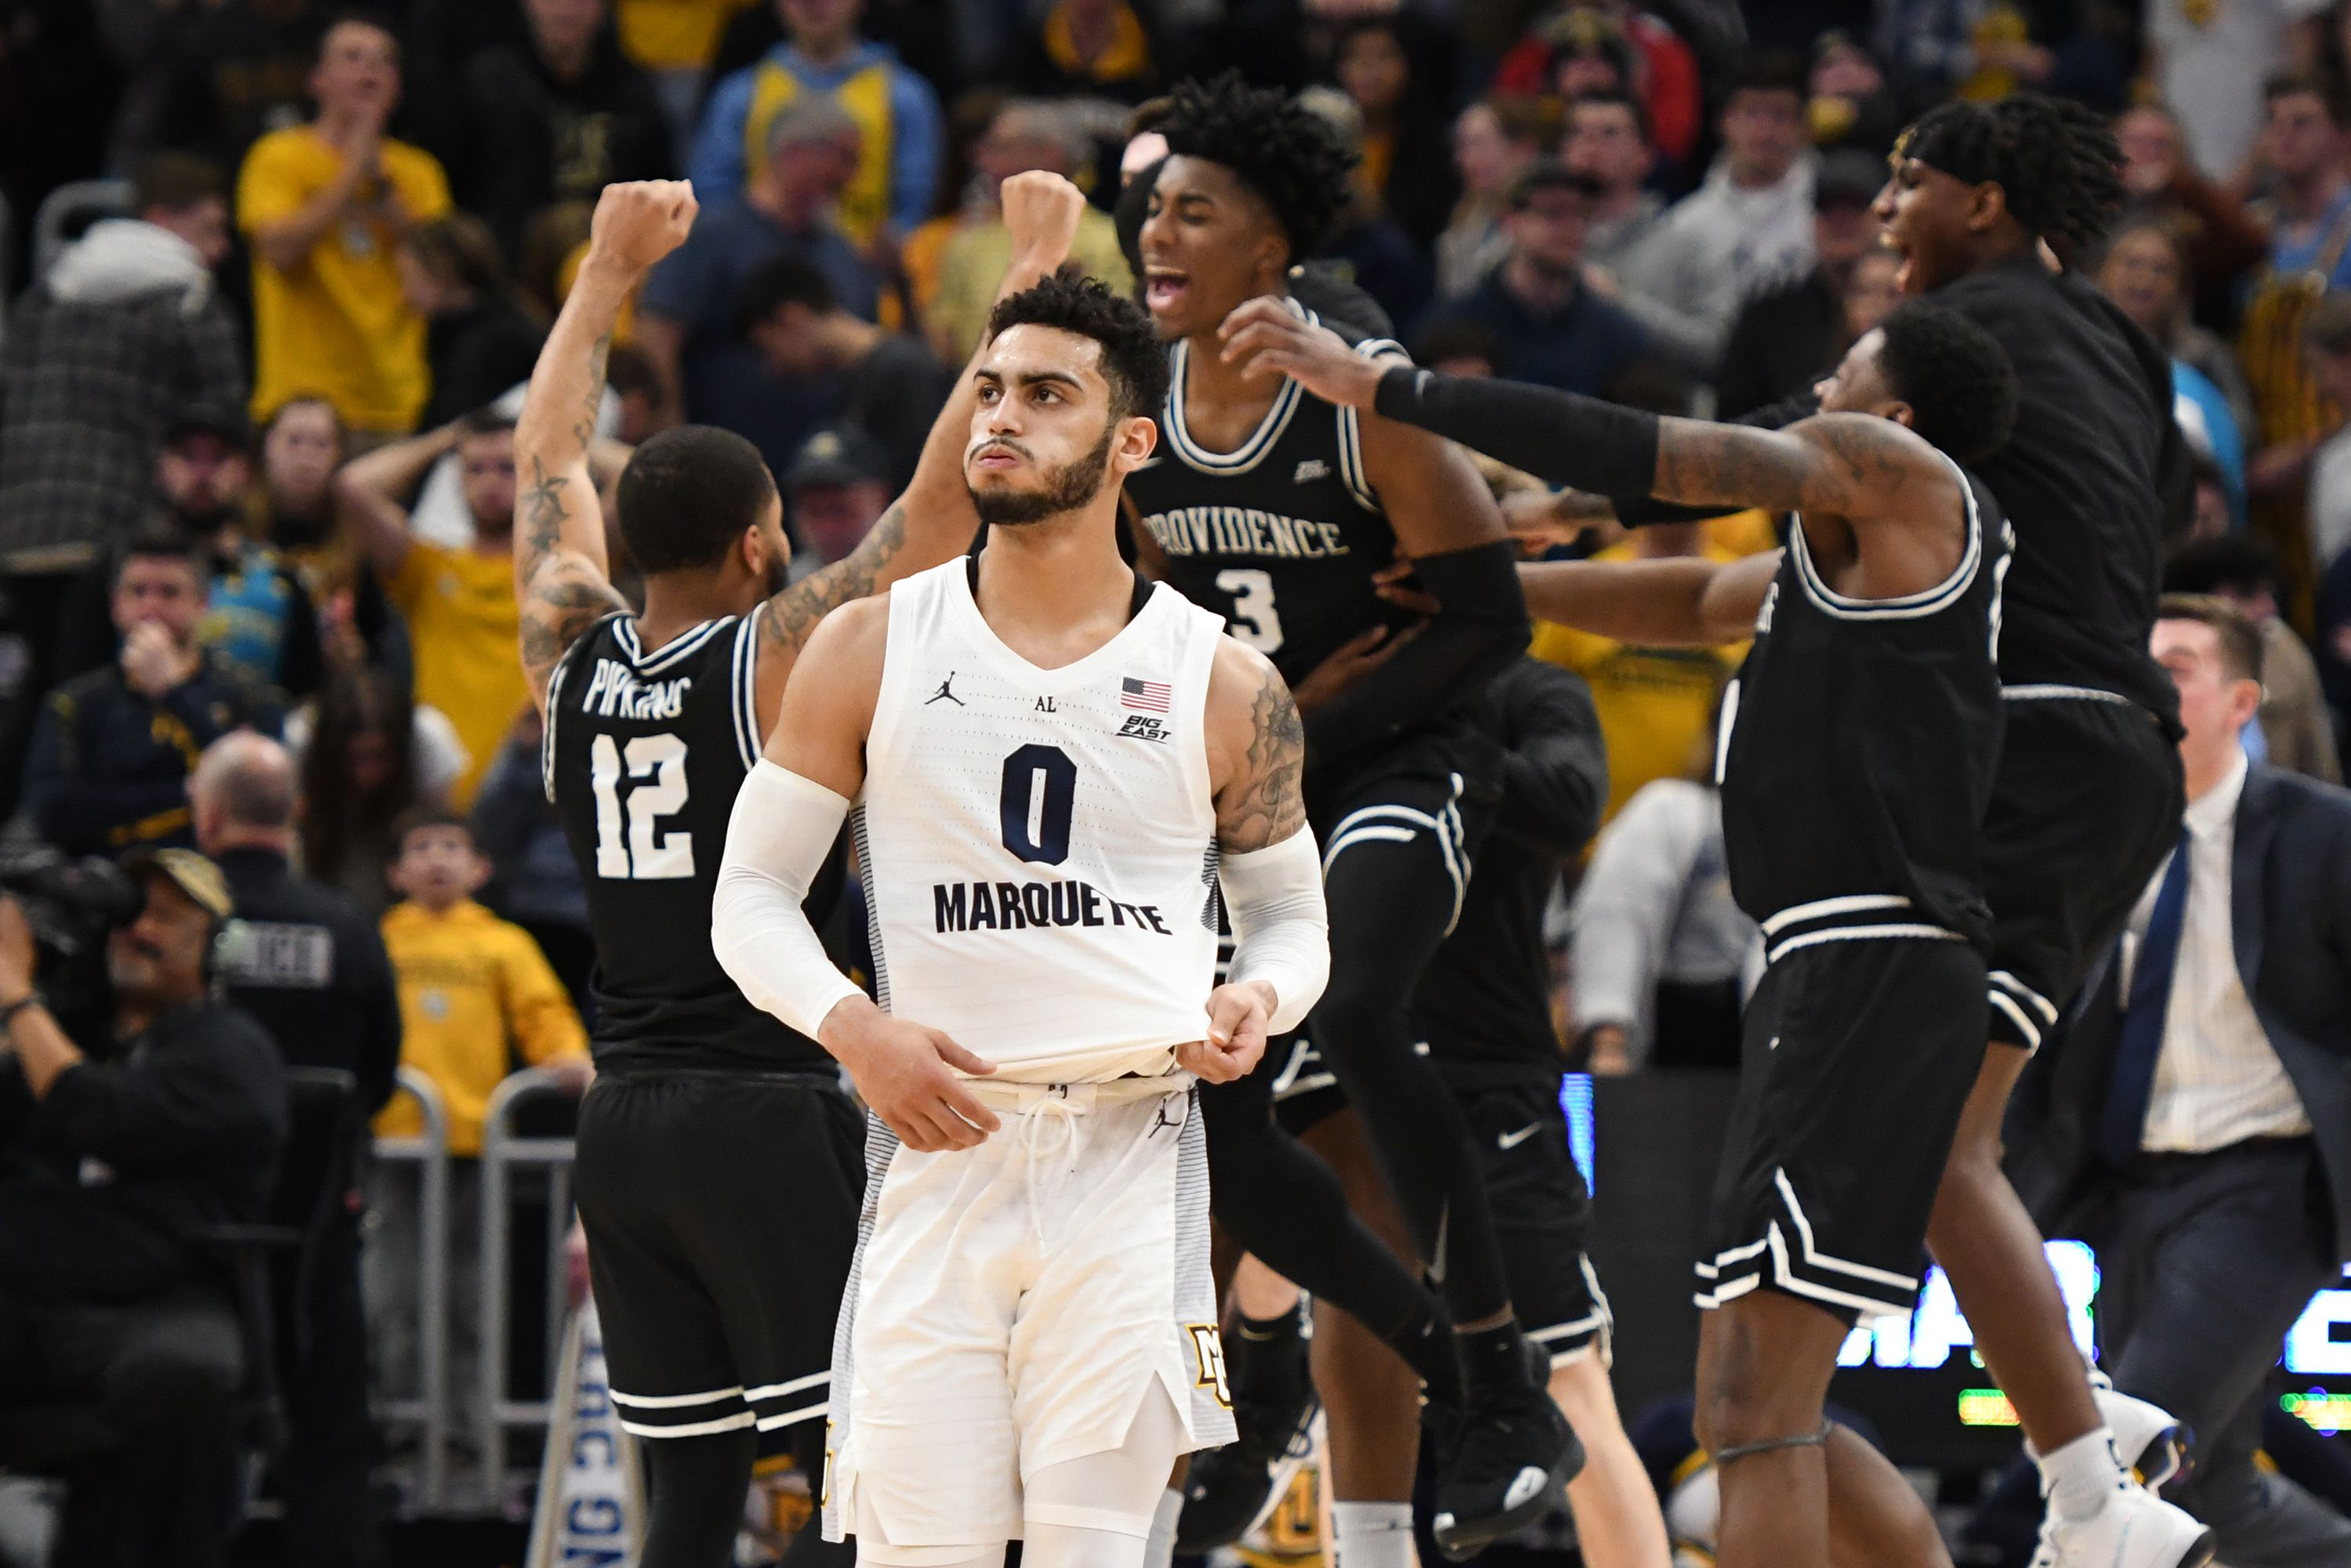 Providence players celebrating behind Markus Howard